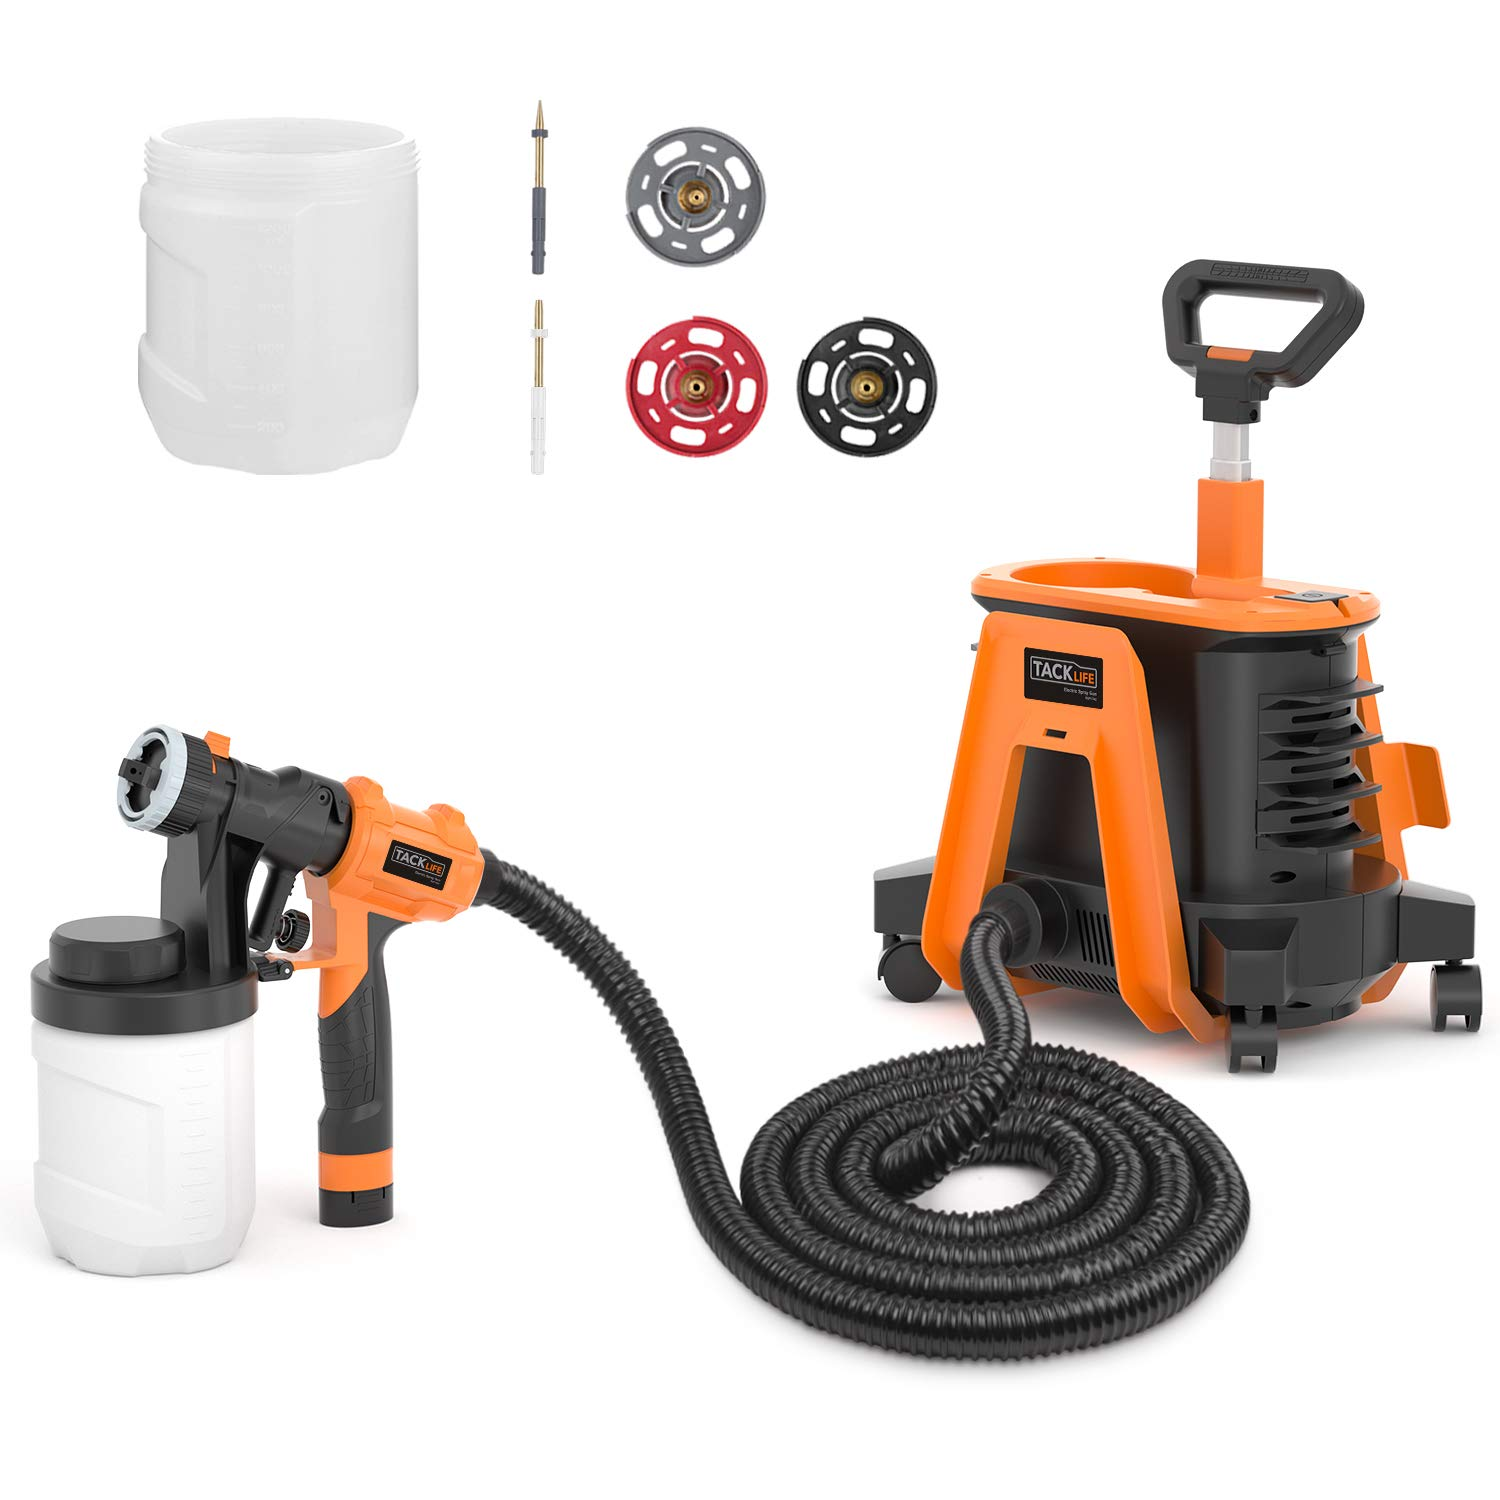 Paint Sprayer, Tacklife Patent SGP17AC 1200 W Hvlp Spray Gun, 1100ml/min 1200ml Detachable Containers, Universal Wheel Perfect for Priming, Painting, Woodworking